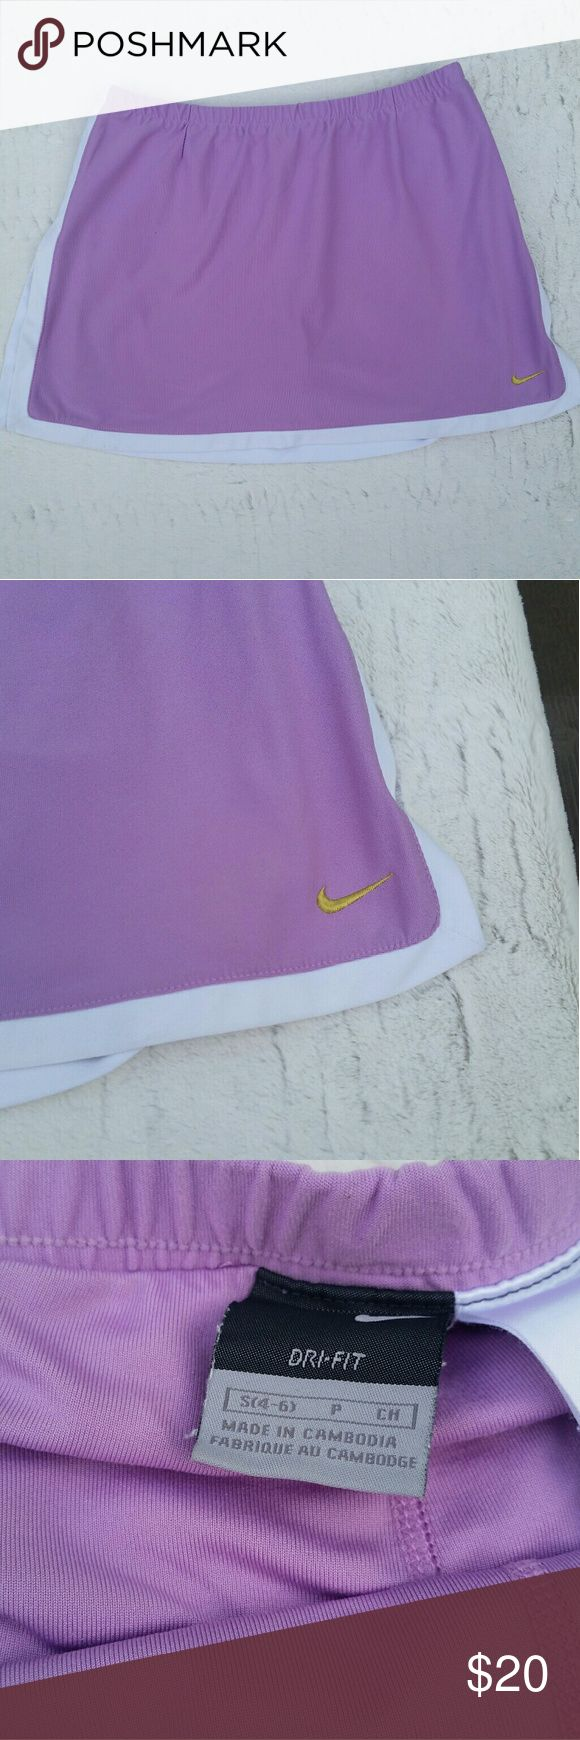 Nike Dri Fit Skirt Skort Golf Tennis Purple Small Women's Nike Skort  What a cute skirt in a gorgeous color! *Purple trimmed with White *Gold Nike Swoosh Symbol  *Skirt with Shorts underneat *92% Polyester 8% Spandex *Size Small (4-6)  Gently used clothing. No flaws or damage. Looks great!  Waist Laying Flat 12.5 inches Top of Waist to Hem 12.5 inches Of course there is stretch to the waistband on this item as well.  Please check these measurements against your own size before ordering as…